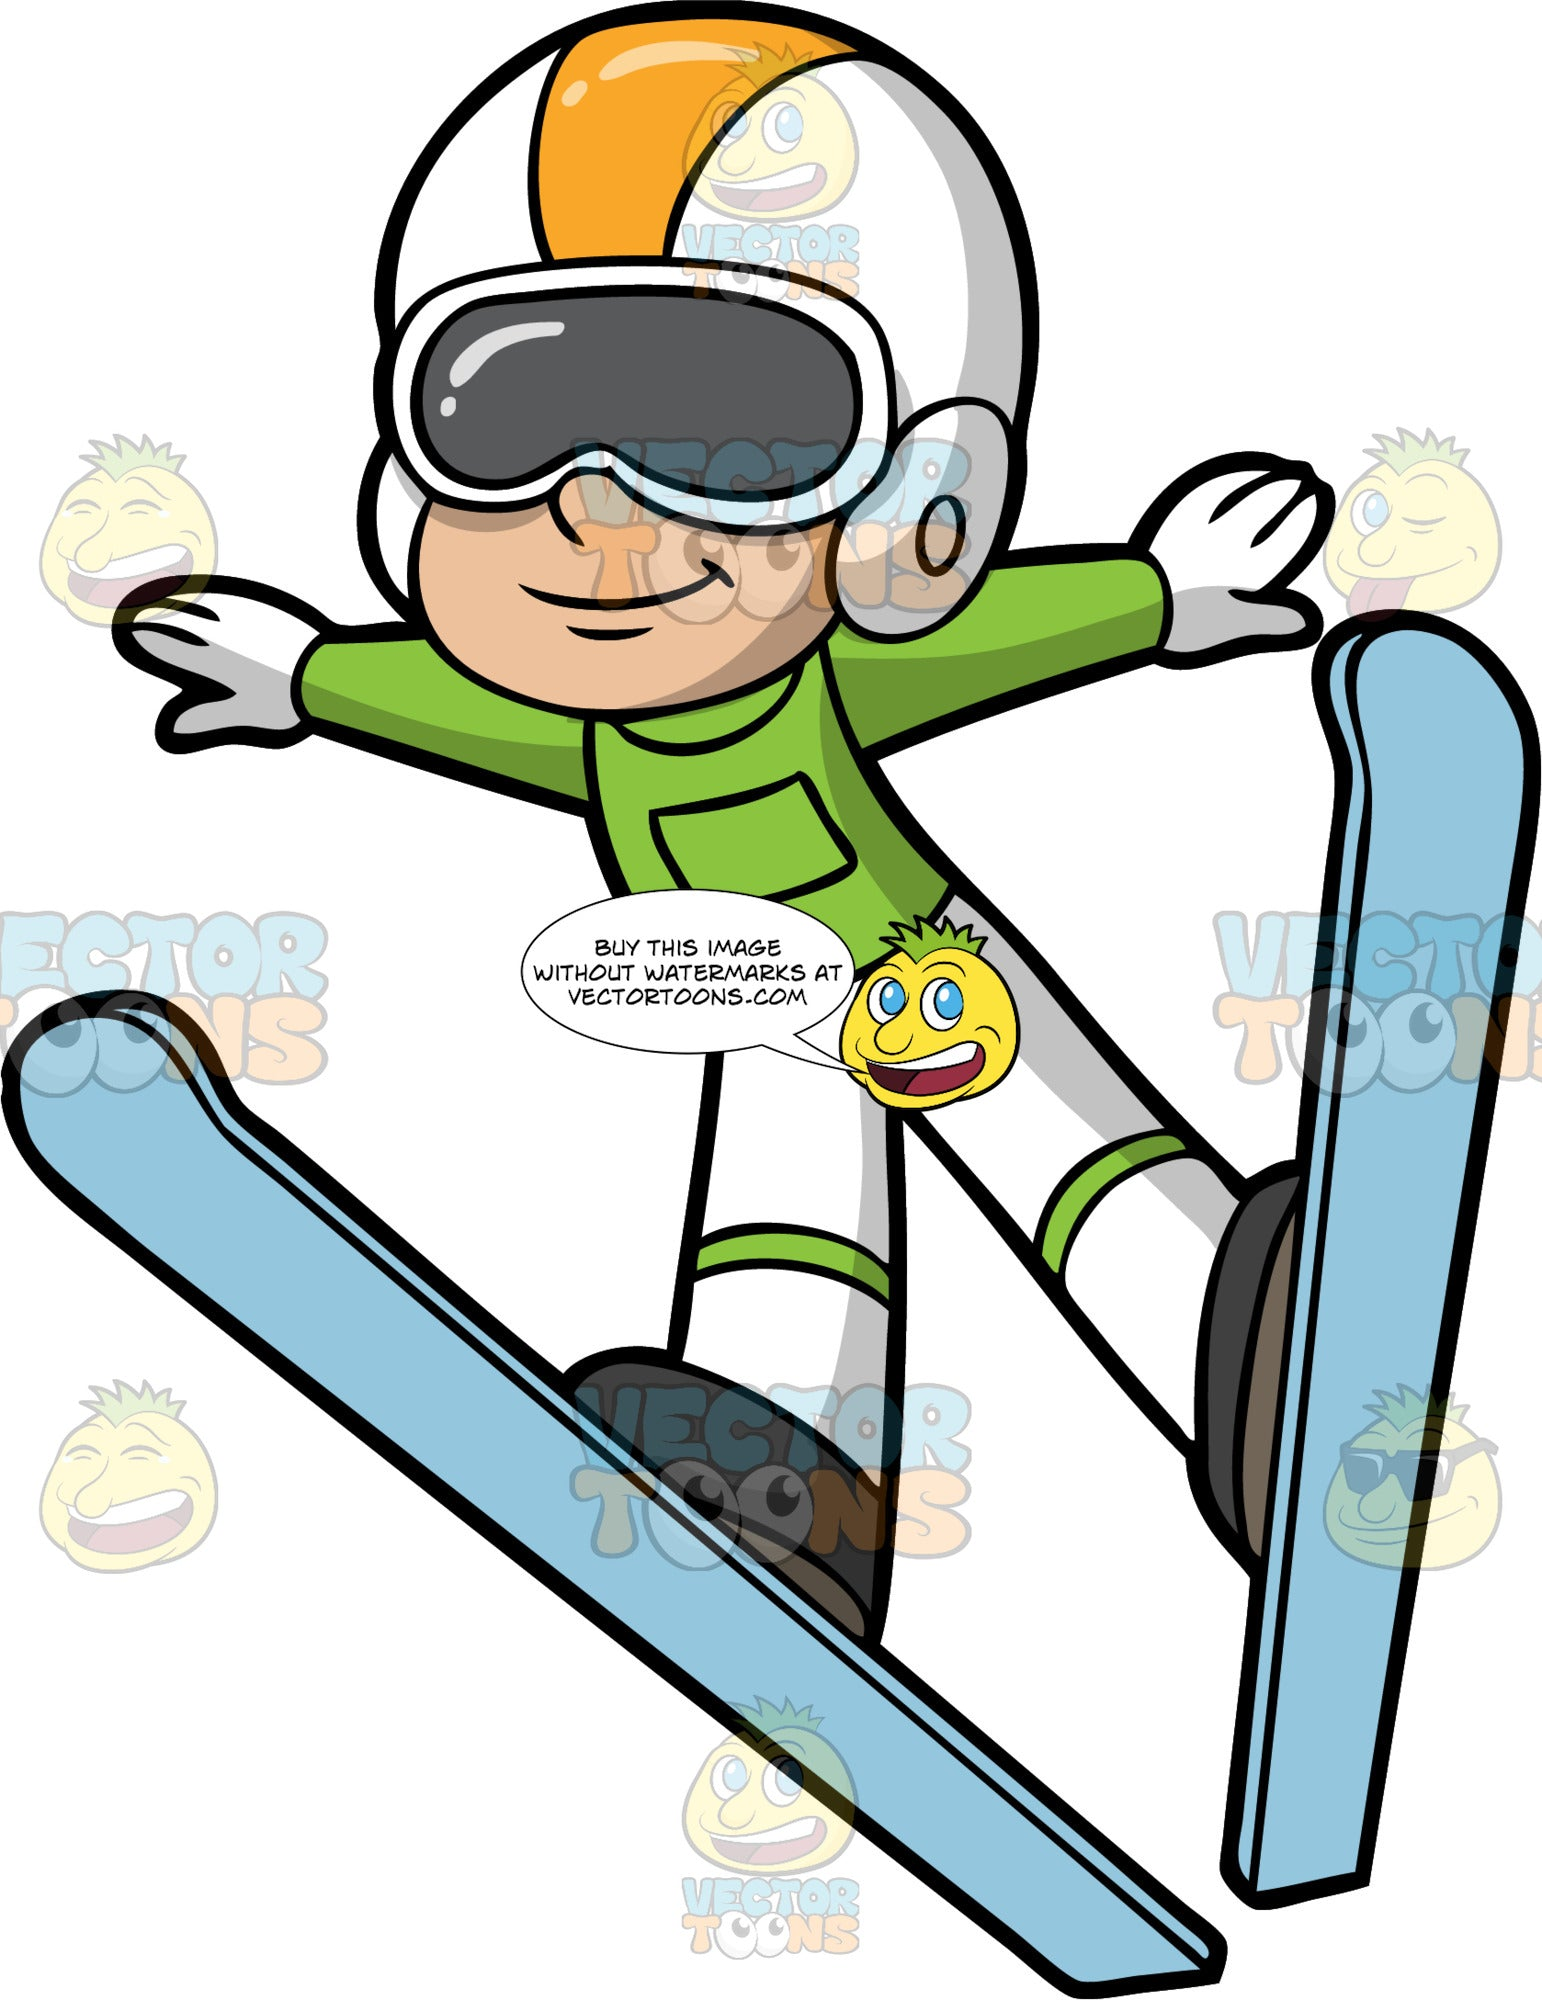 A Boy Doing A Ski Jump. A boy wearing white snow pants, a green ski jacket, white gloves, a white and yellow helmet and gray goggles, lifts off into the air as he executes a ski jump